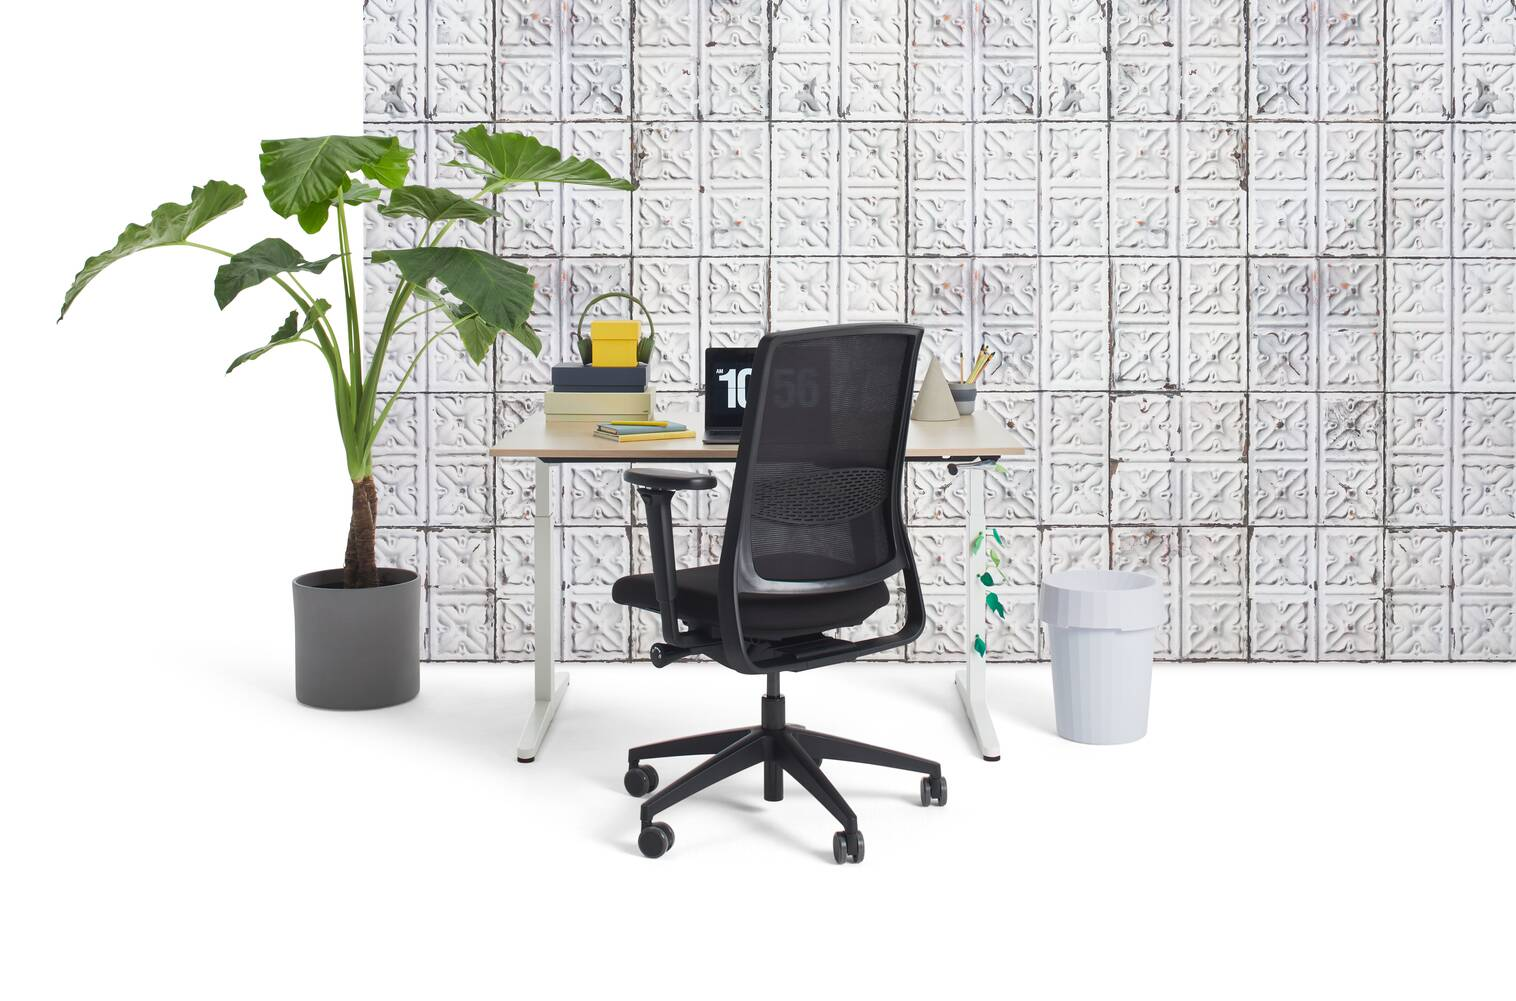 Gispen Home office HVM desk in white with oak tabletop and black Zinn Smart 20 office chair with 4D armrests and brooklyn tins wall front view